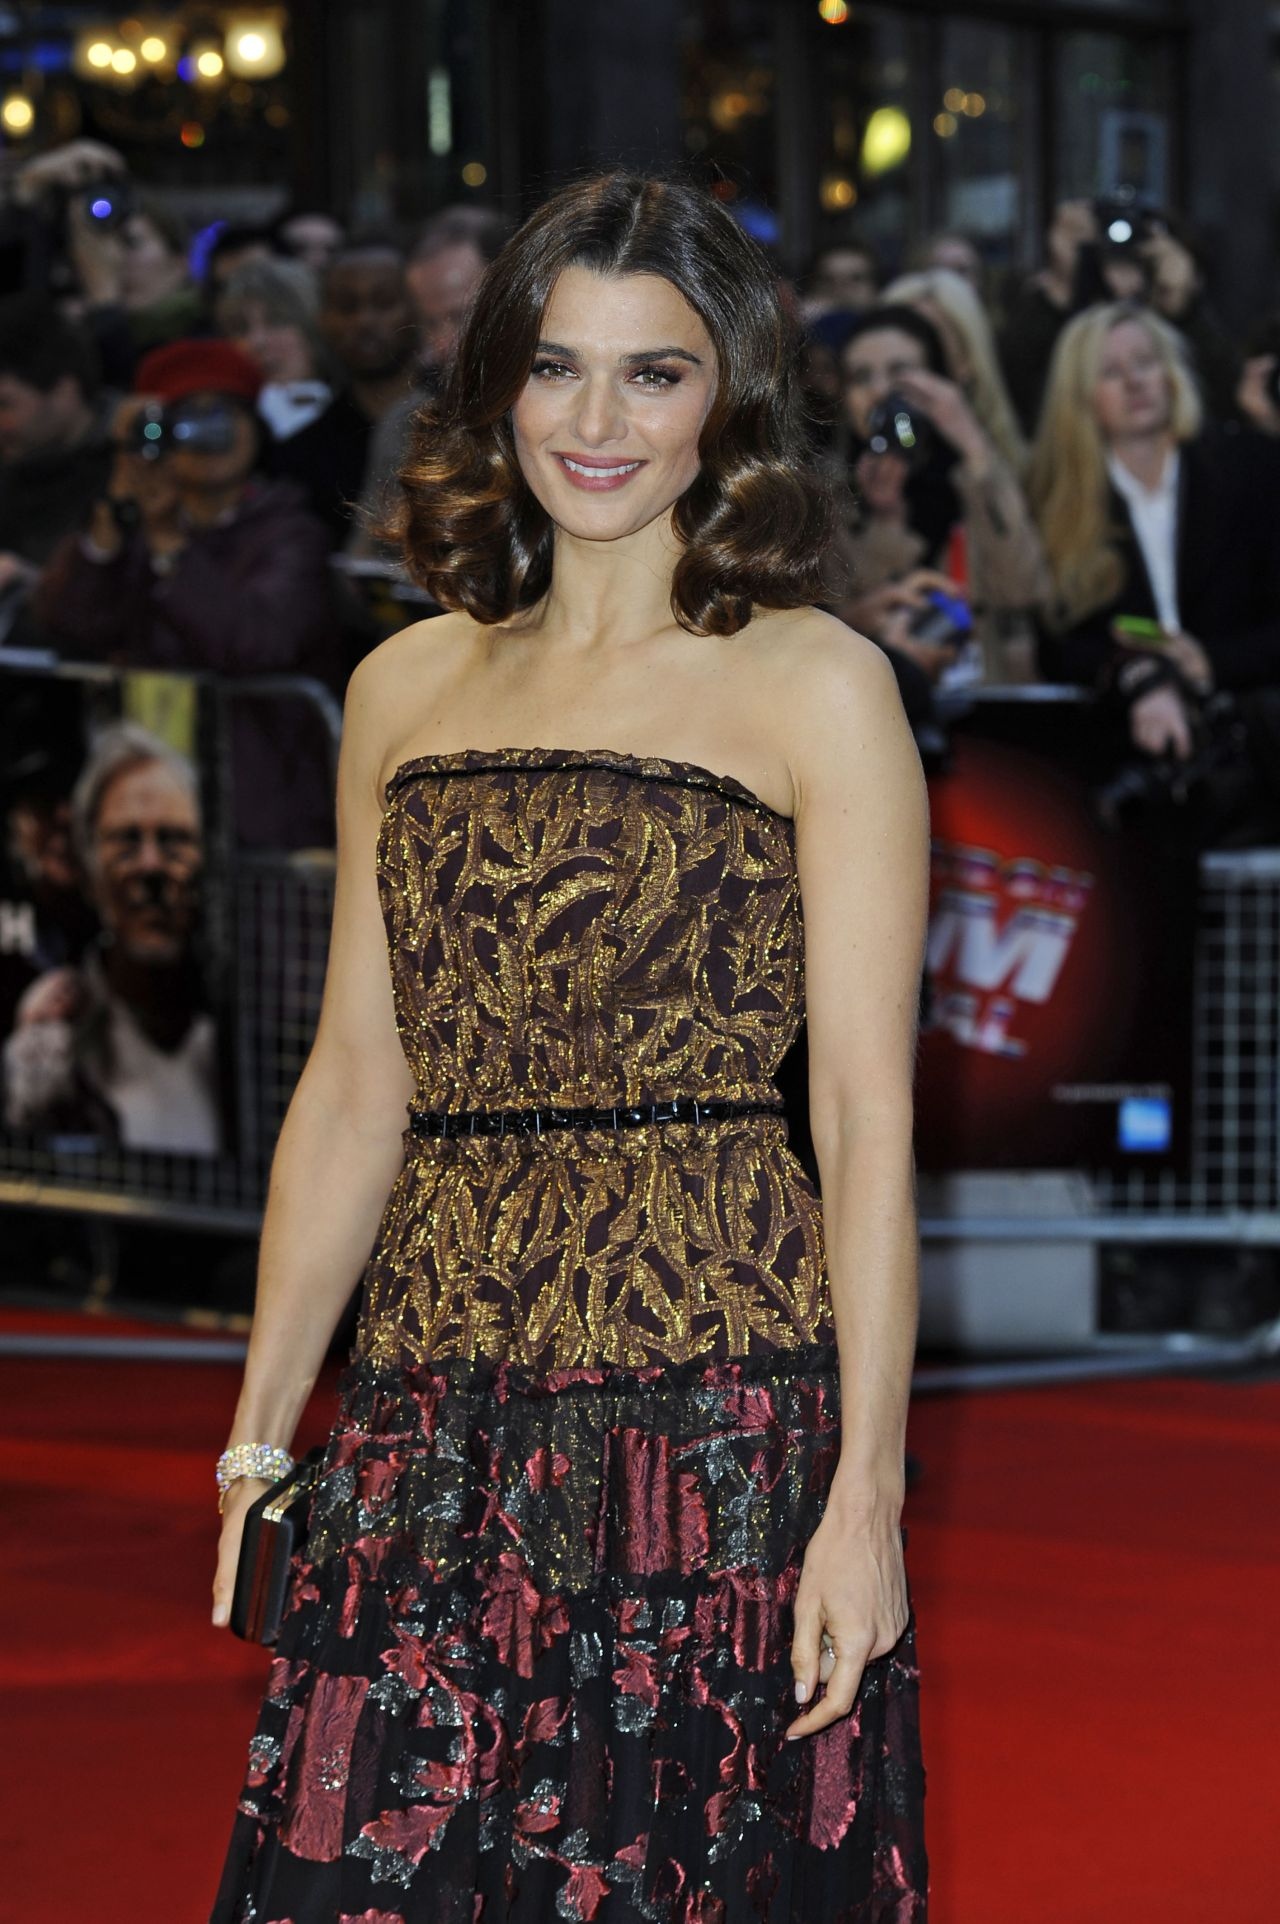 rachel-weisz-youth-red-carpet-at-the-bfi-london-film-festival_4